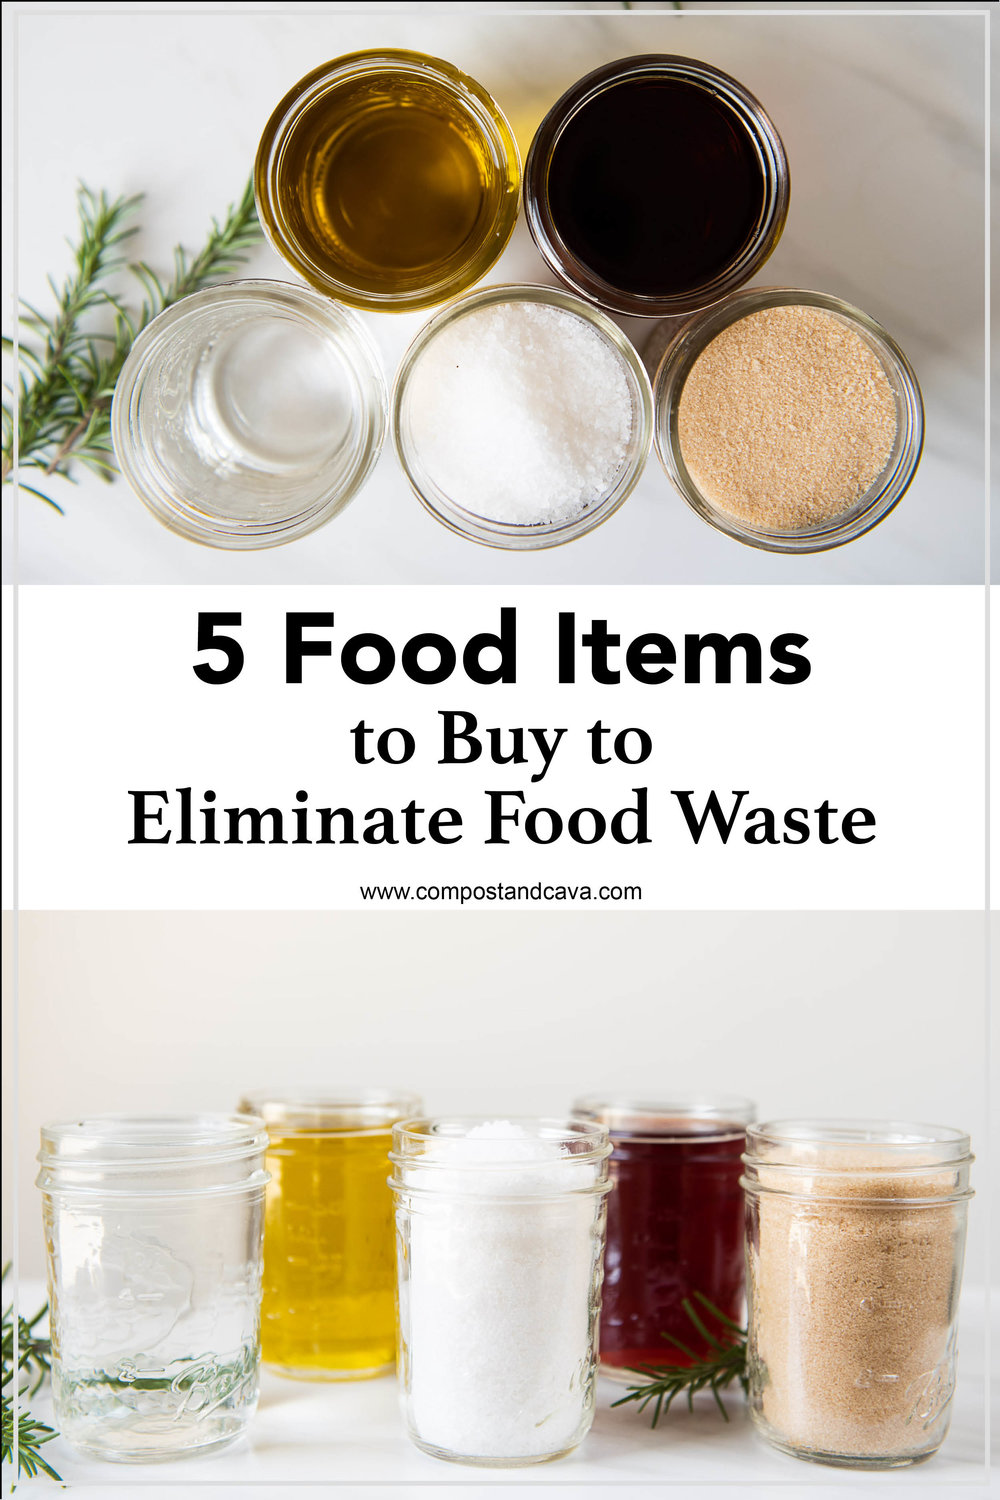 5 Food Items to Stock Up On to Help Eliminate Food Waste and Stretch Your Budget